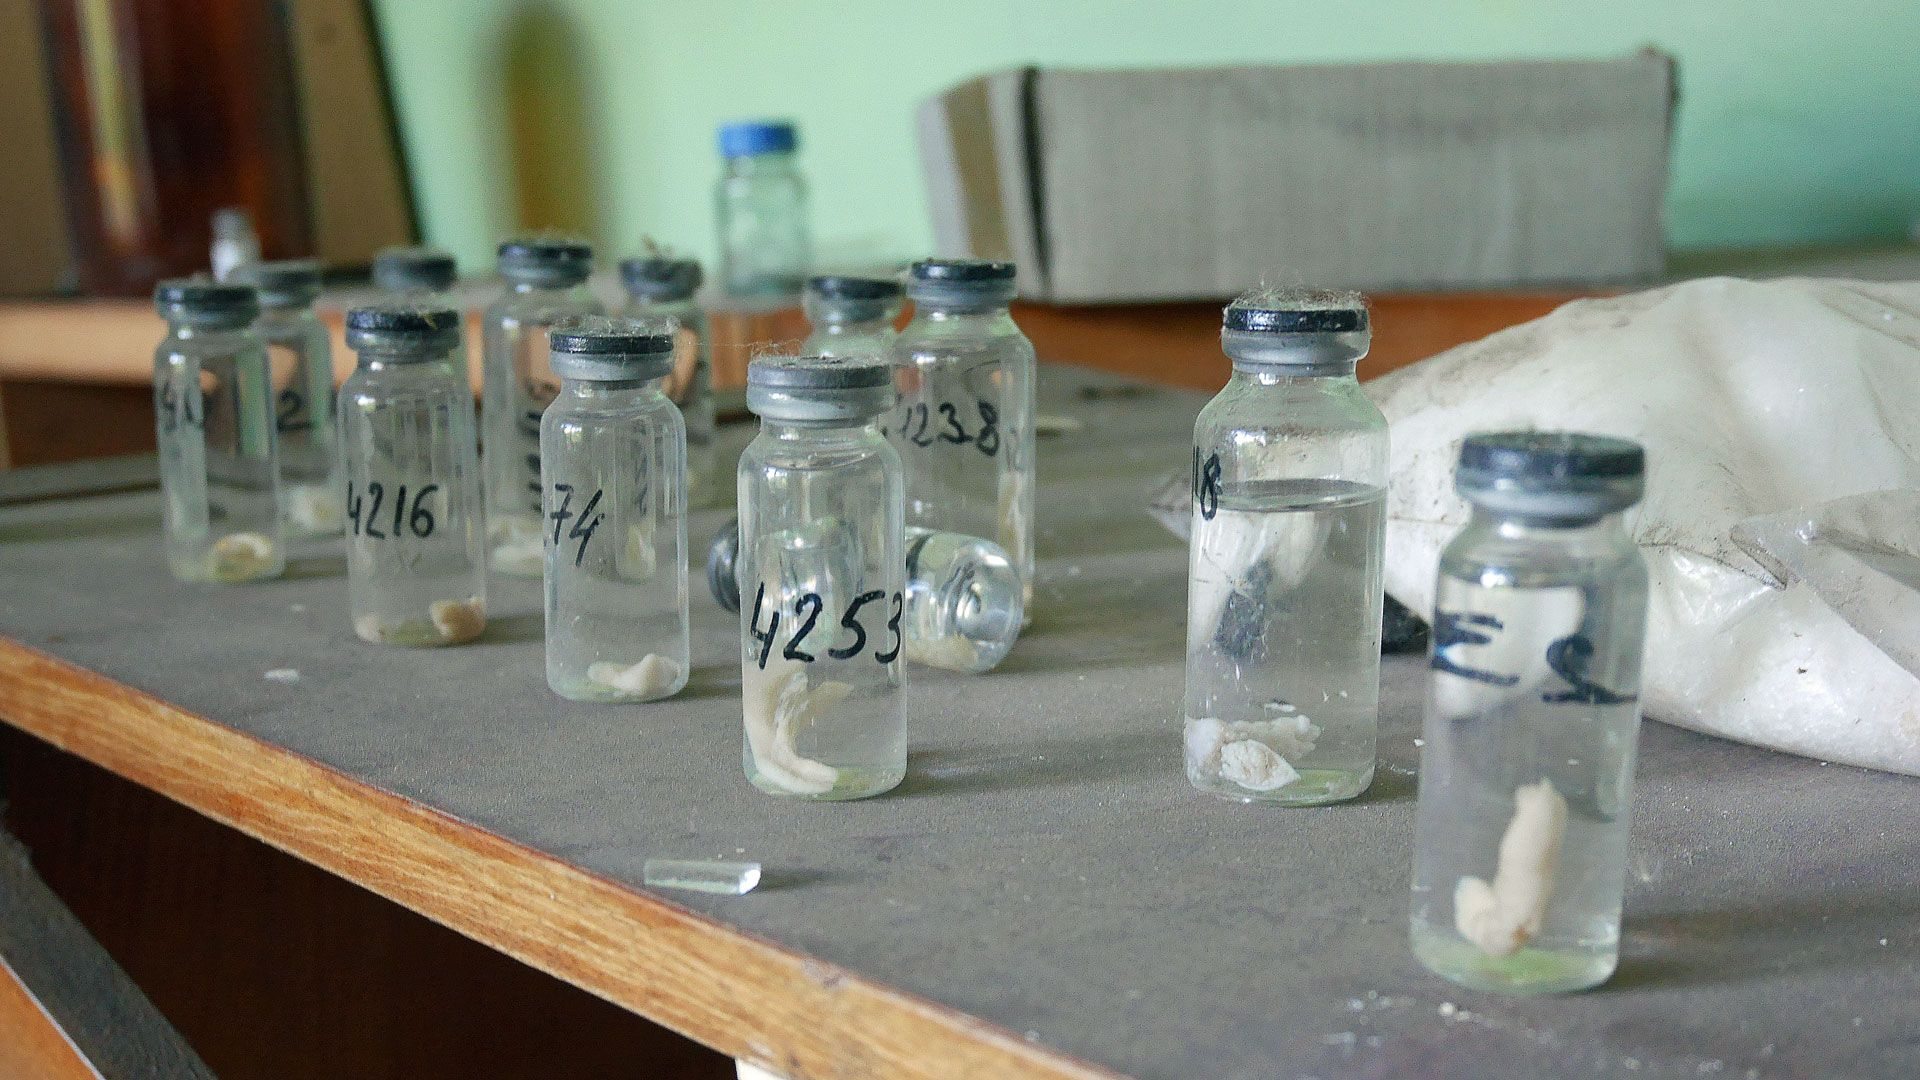 chernobyl-abandoned-research-laboratory-2